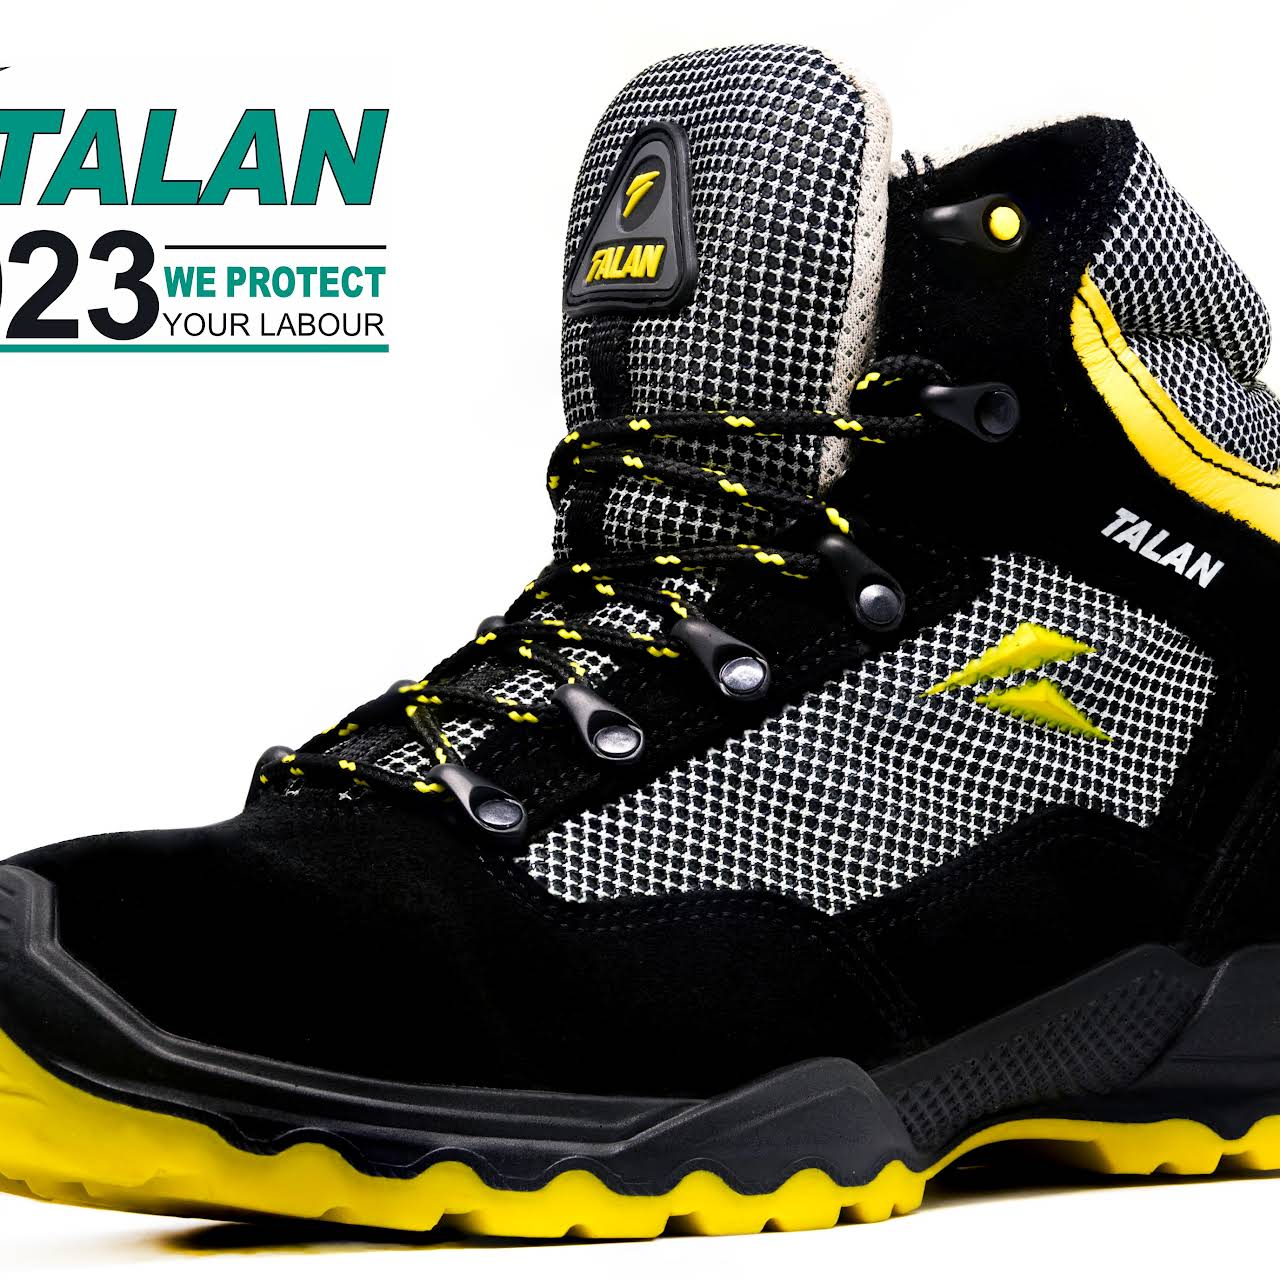 Try These Gladiator Safety Shoes Suppliers In Uae {Mahindra